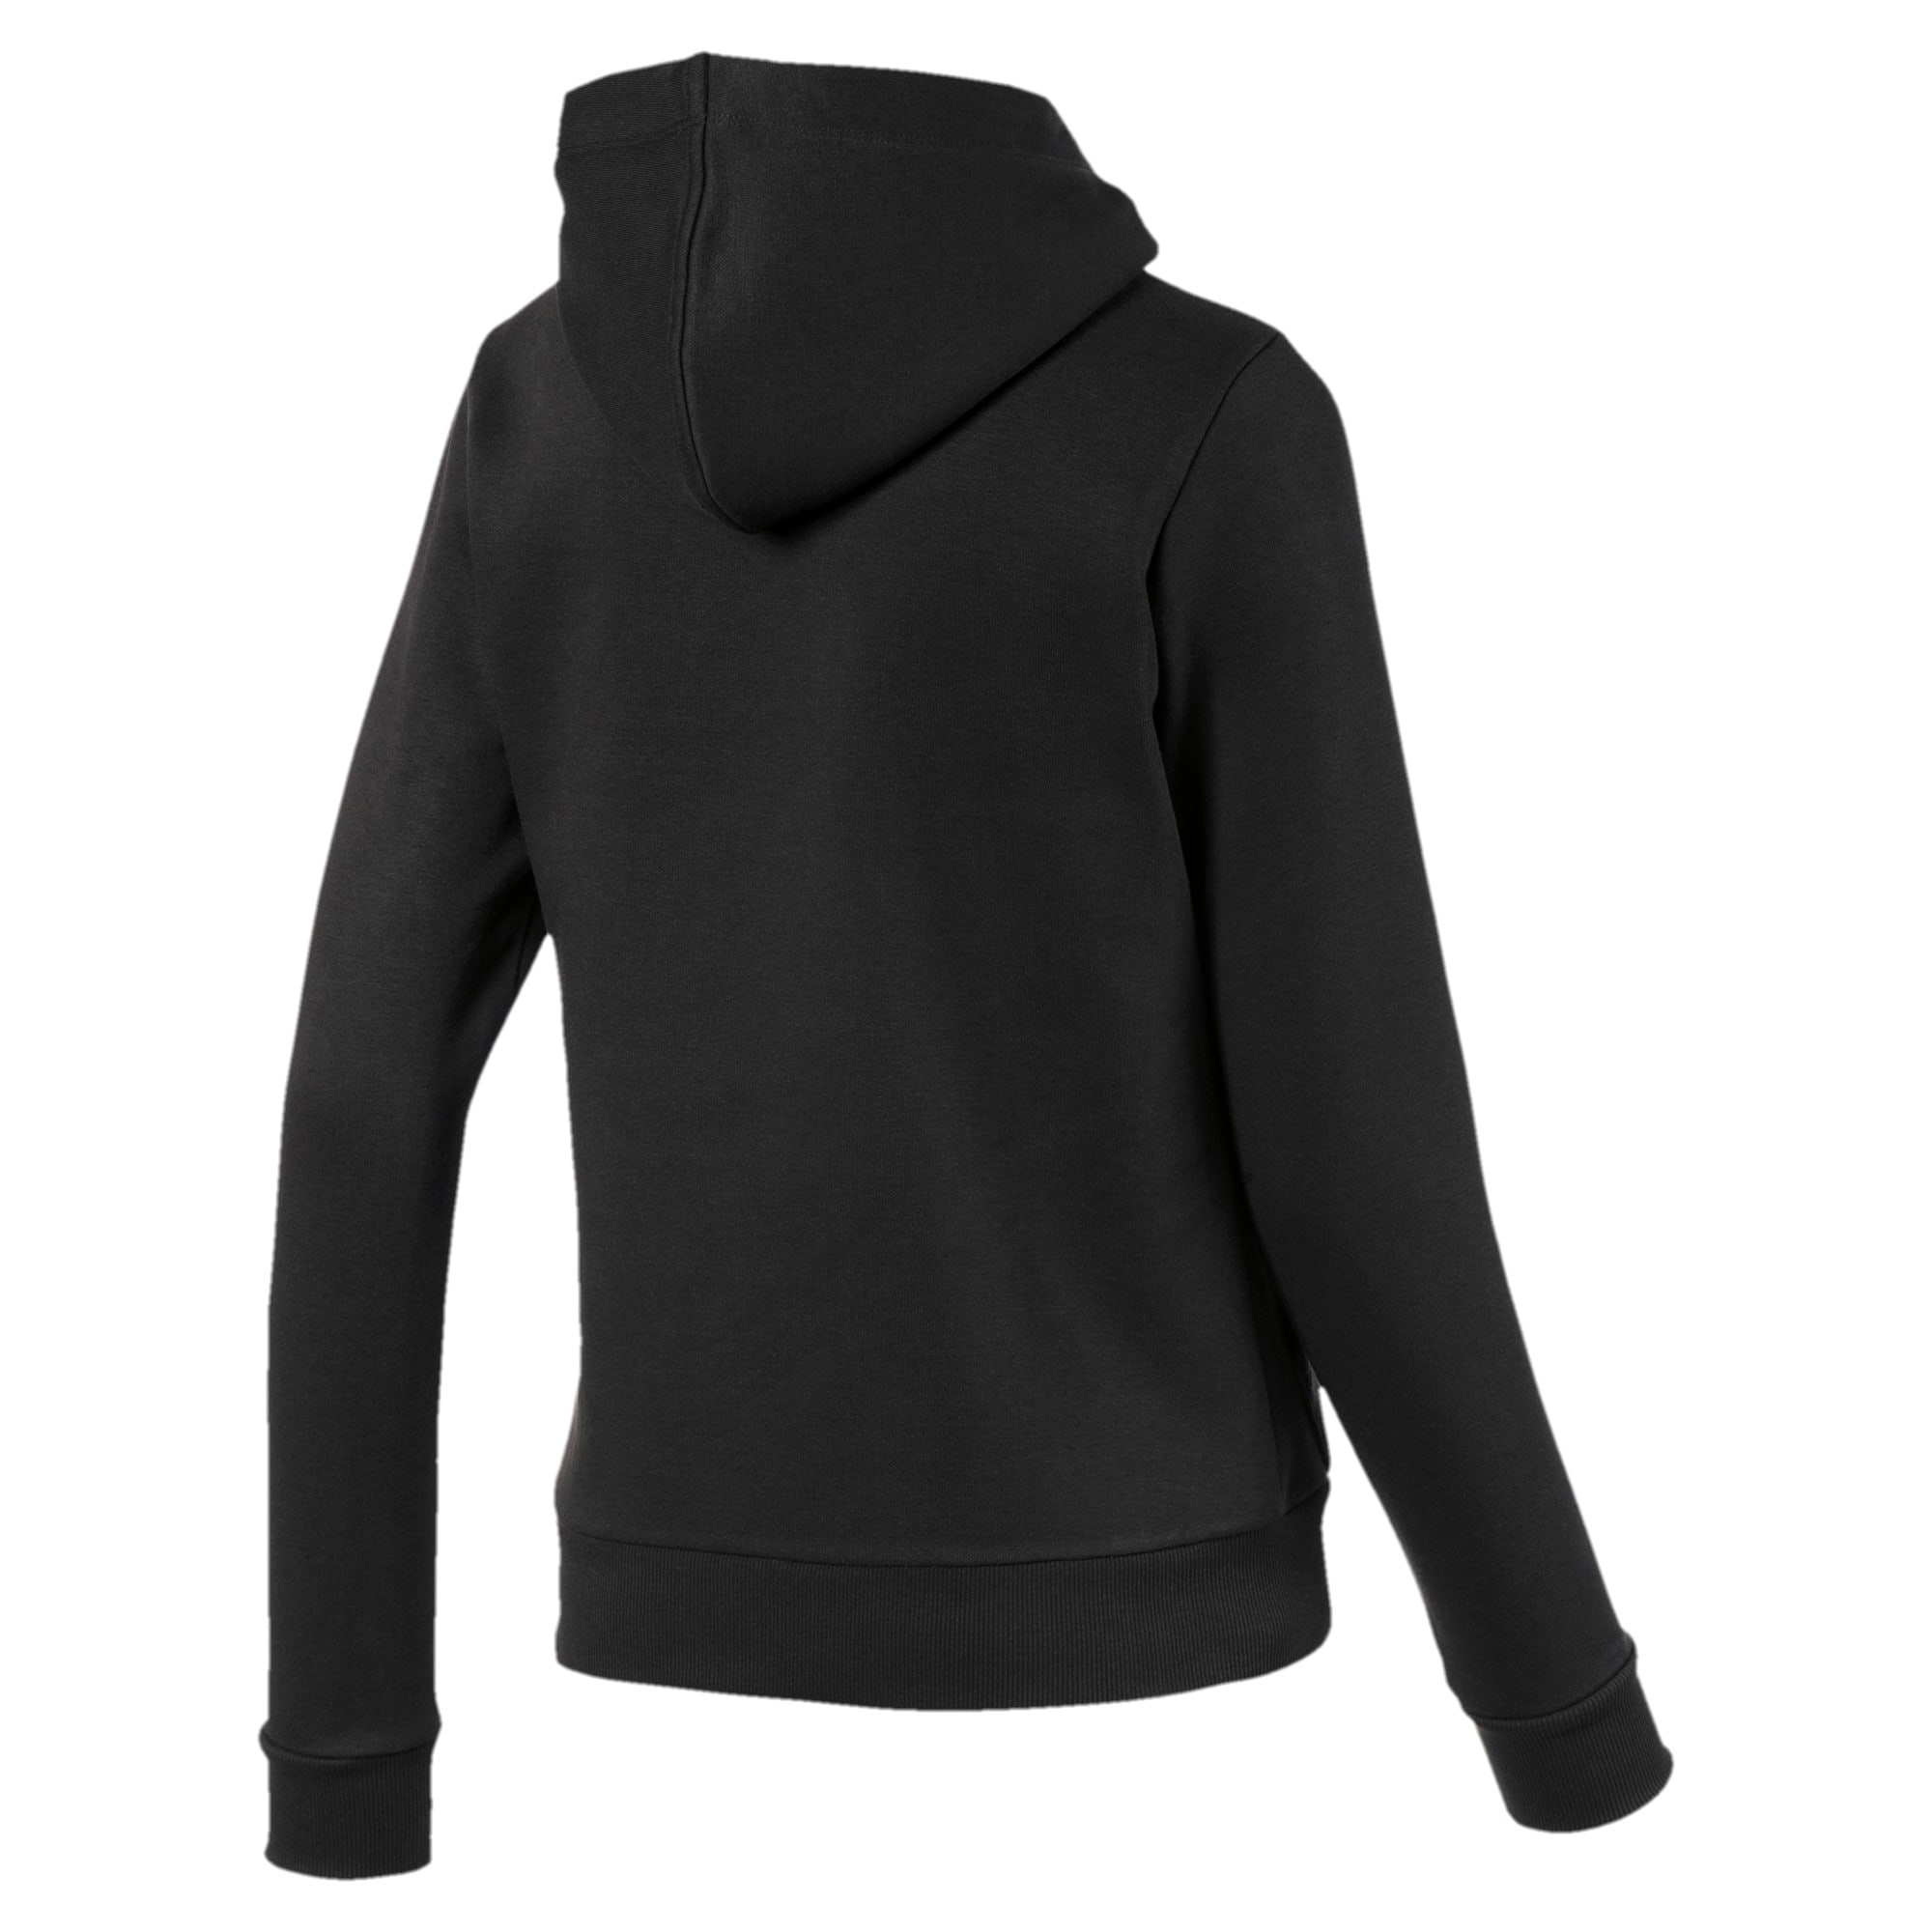 Thumbnail 5 of Kangaroo Hoodie, Puma Black, medium-IND